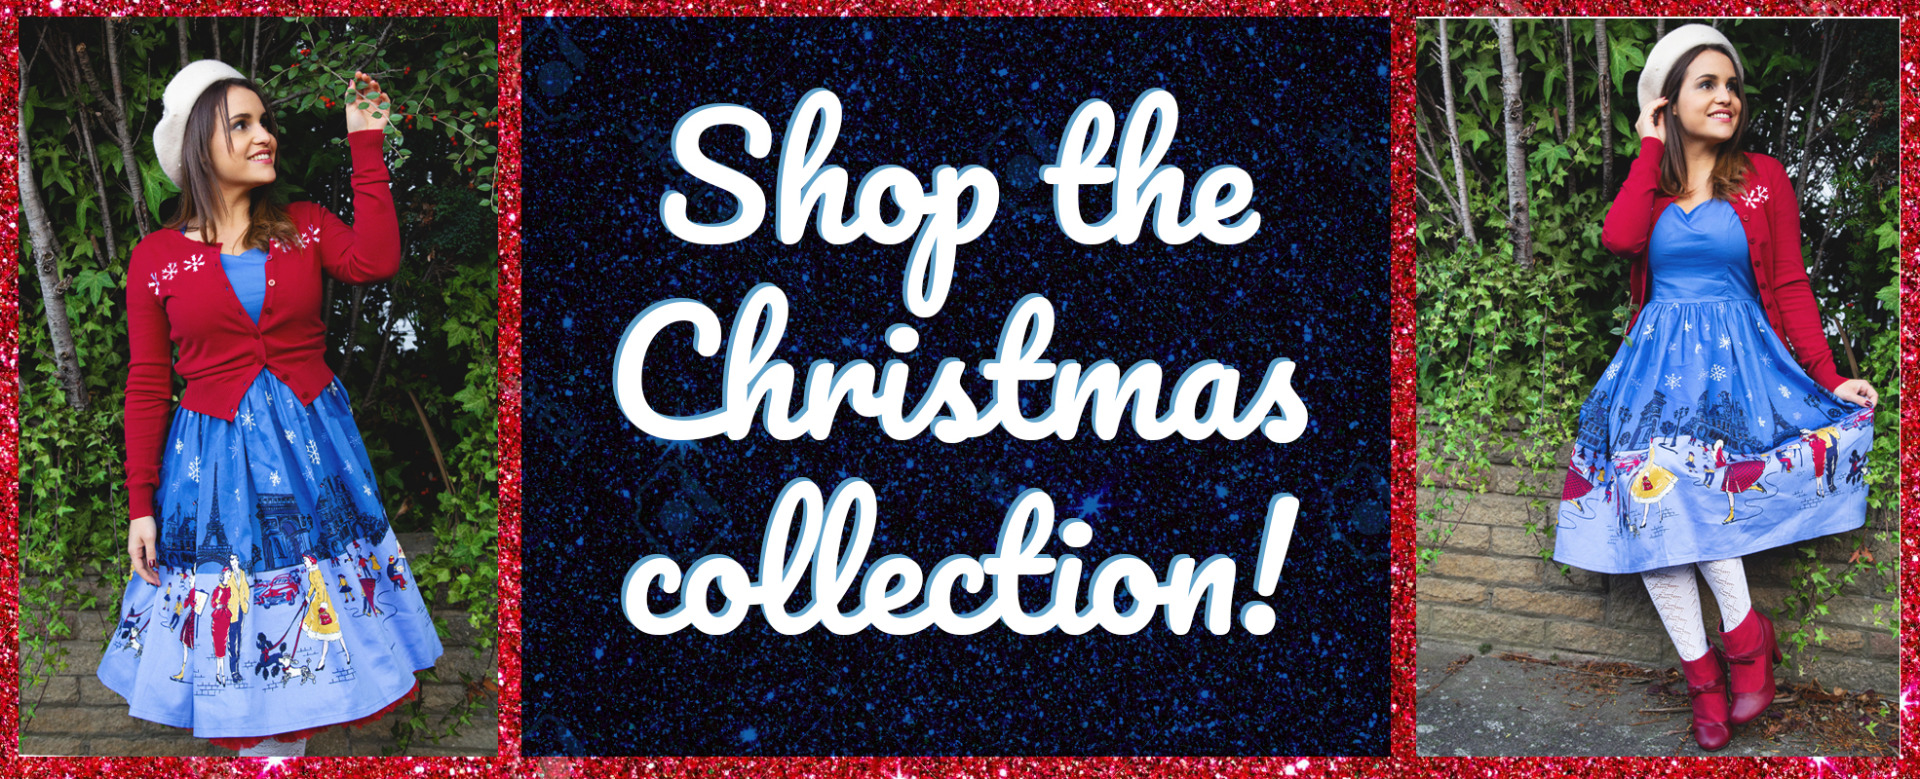 Retro Christmas Vintage Clothing